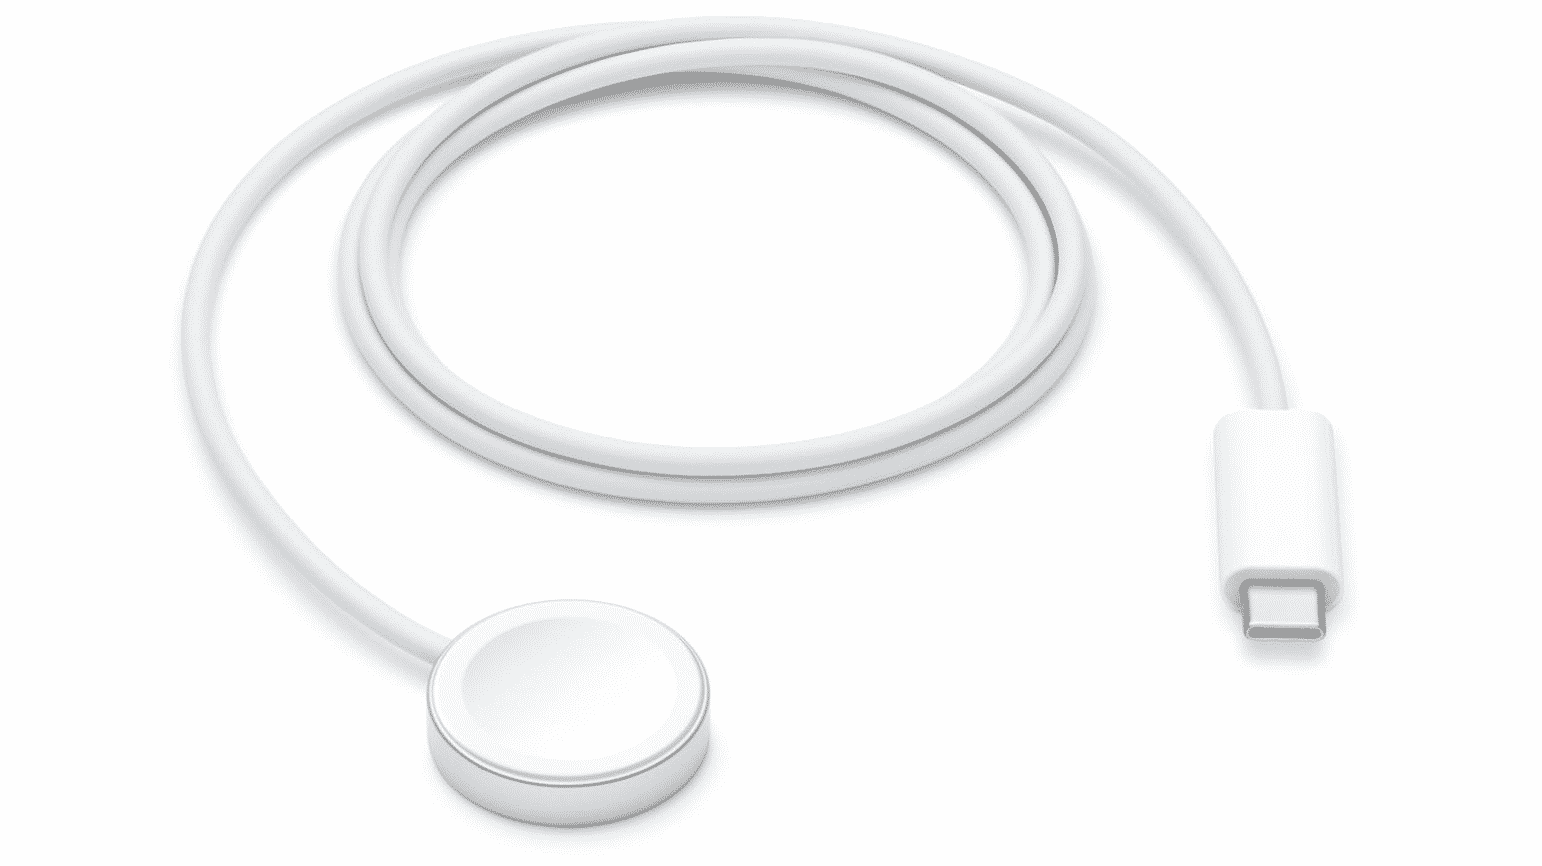 Apple Watch SE Charging Cable